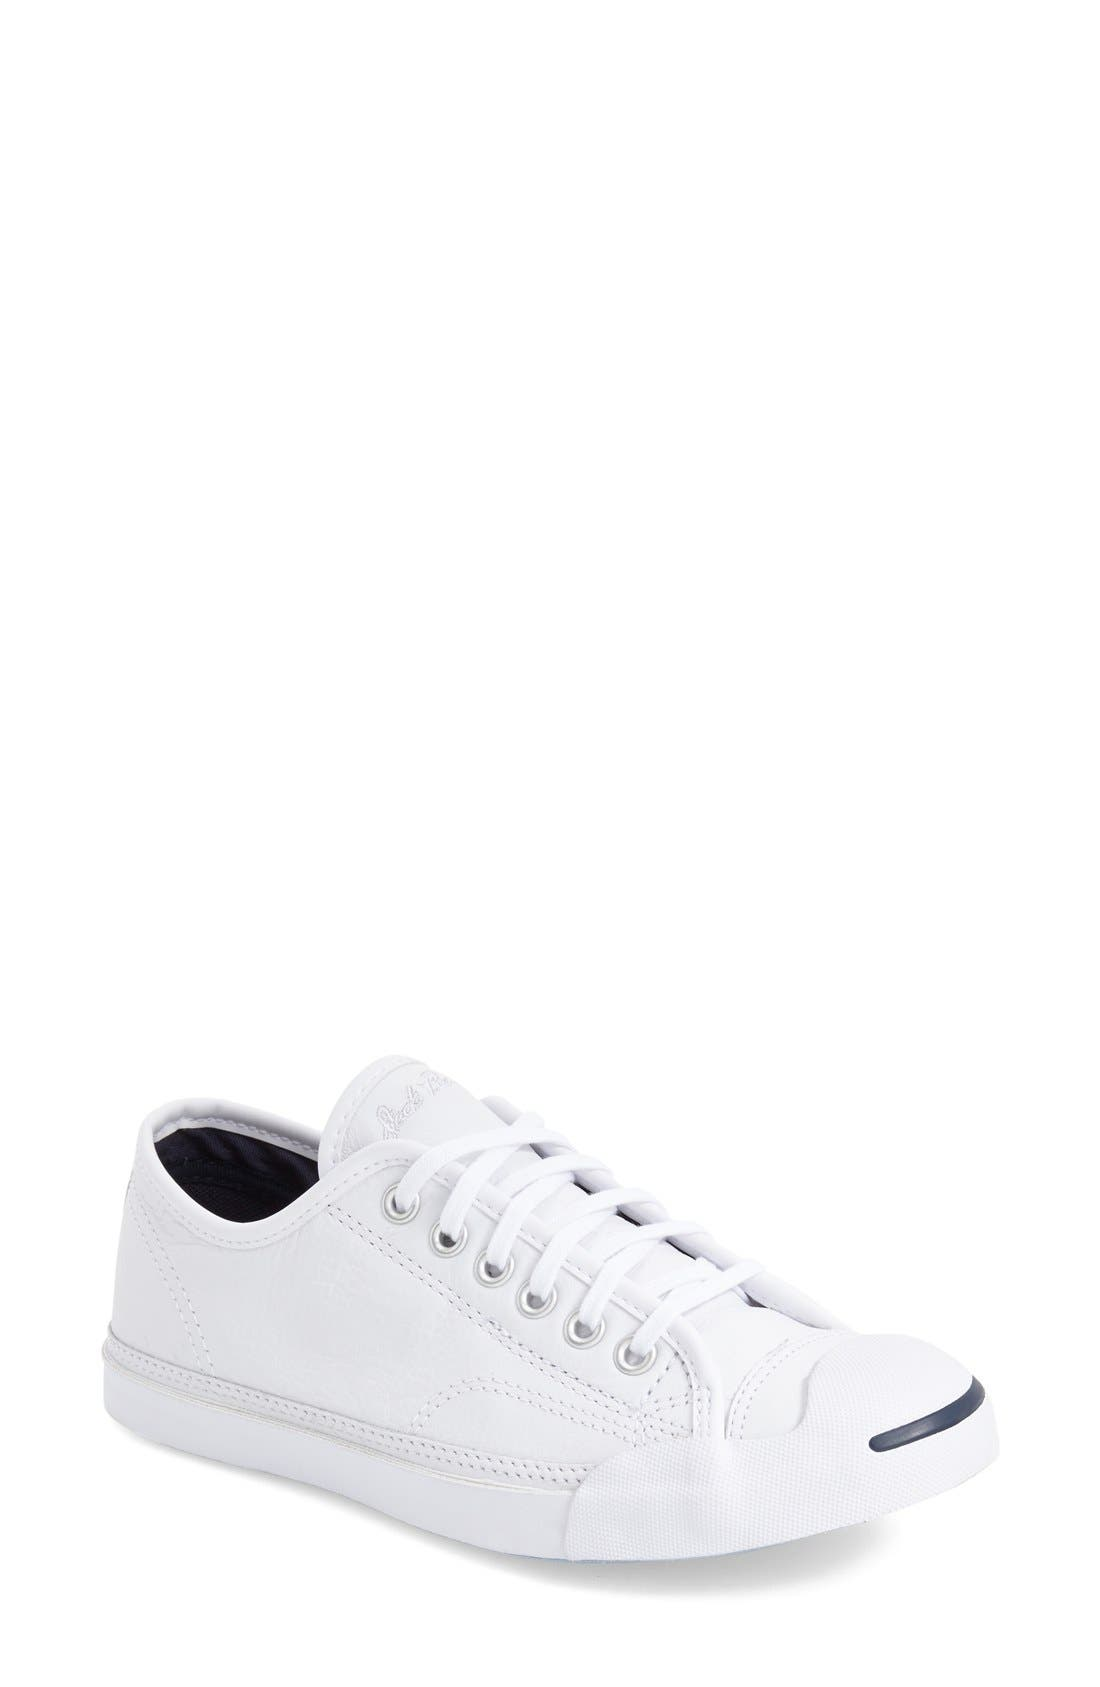 Converse 'Jack Purcell' Low Top Sneaker (Women)